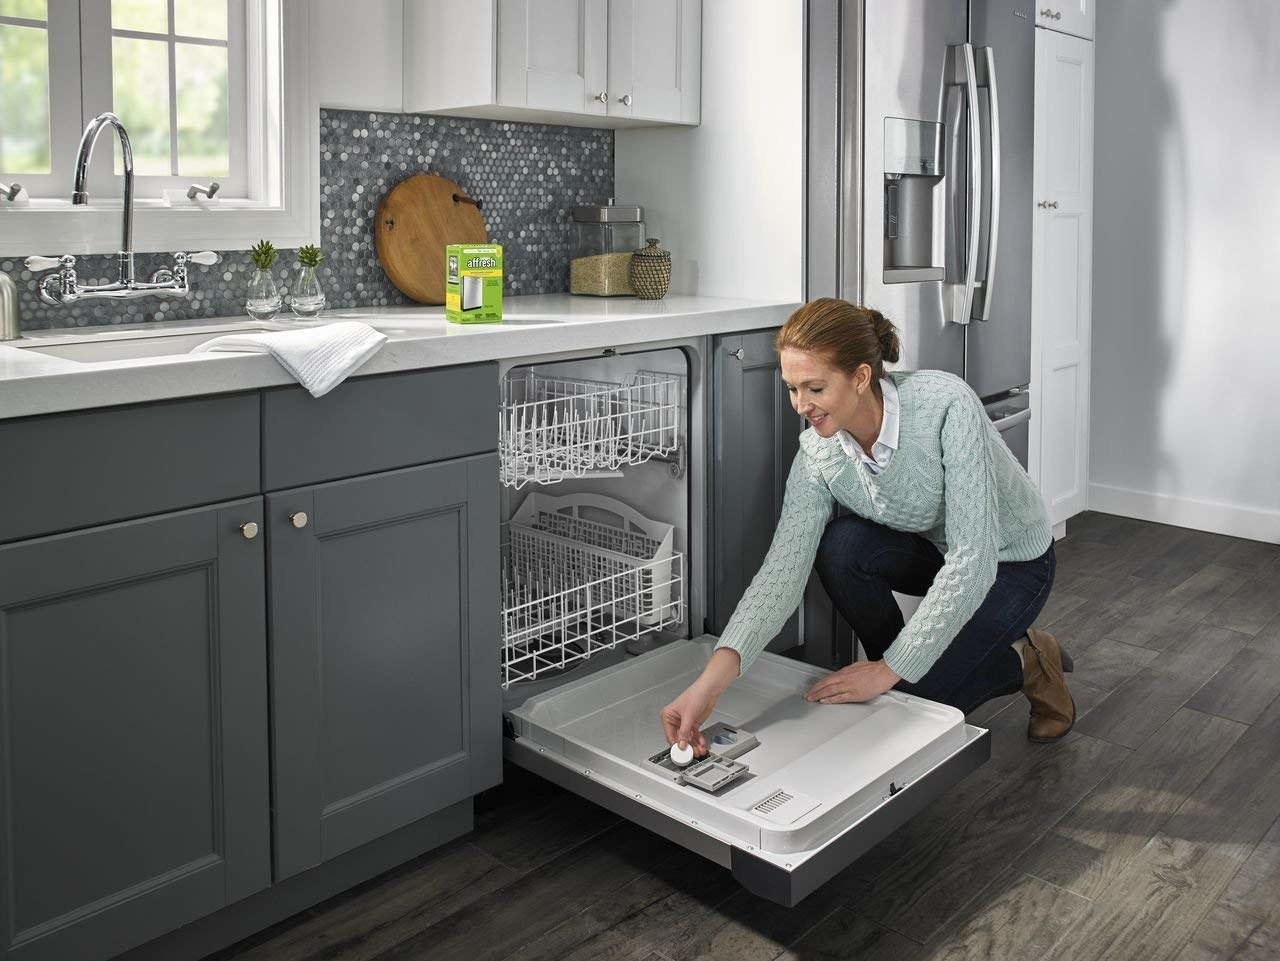 model adds tablet to dishwasher